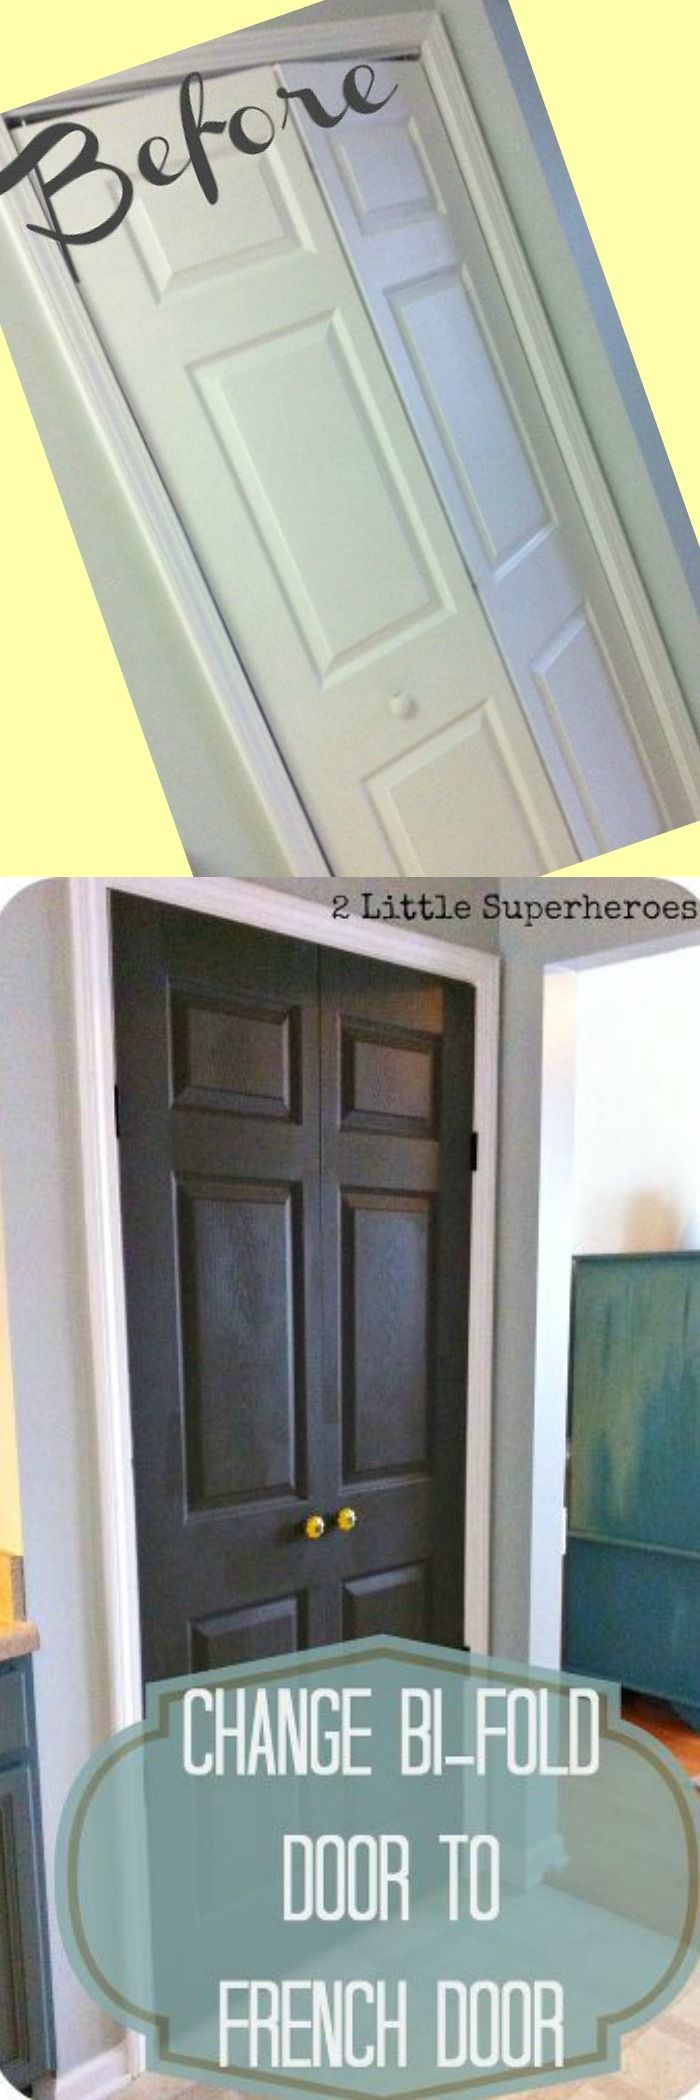 Best 25+ Accordion doors ideas on Pinterest | Accordion glass ...